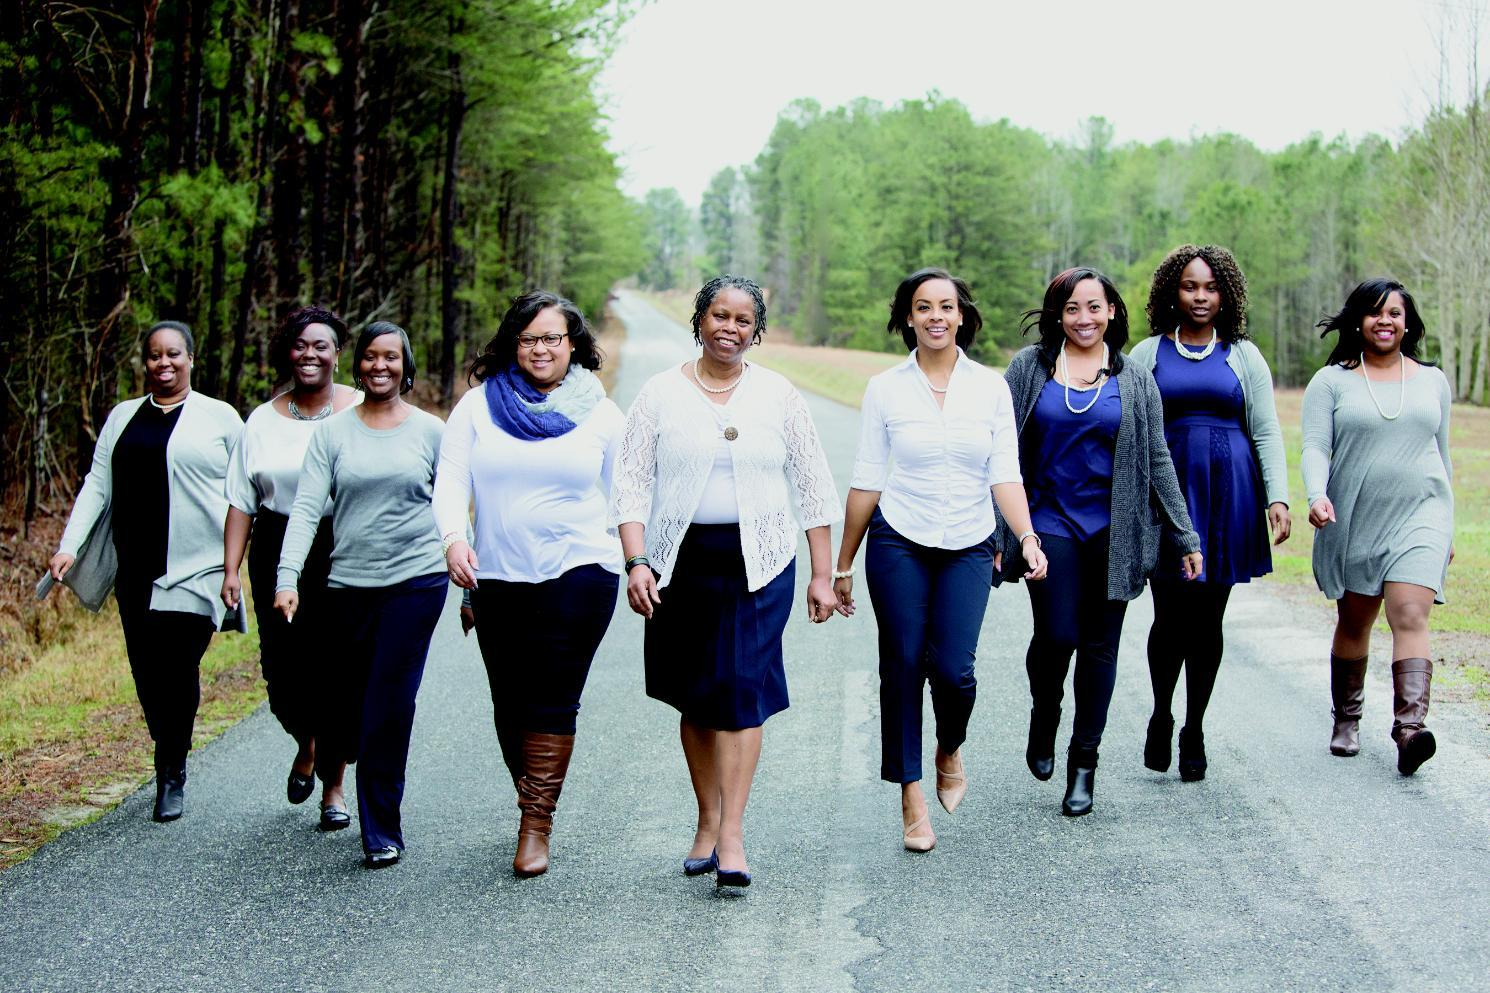 Keeping Longwood in the family: Shawnta Farrar '00 (left), Stacie Whisonant '03, Wartena Crowder Somerville '06, Sonya E. Ragsdale '10, Hattie Farrar '95, Christy Falika Grigg '09, Sierra Hurt '10, Kimberlee Whisonant '06 and Tacarra Marchman '08.